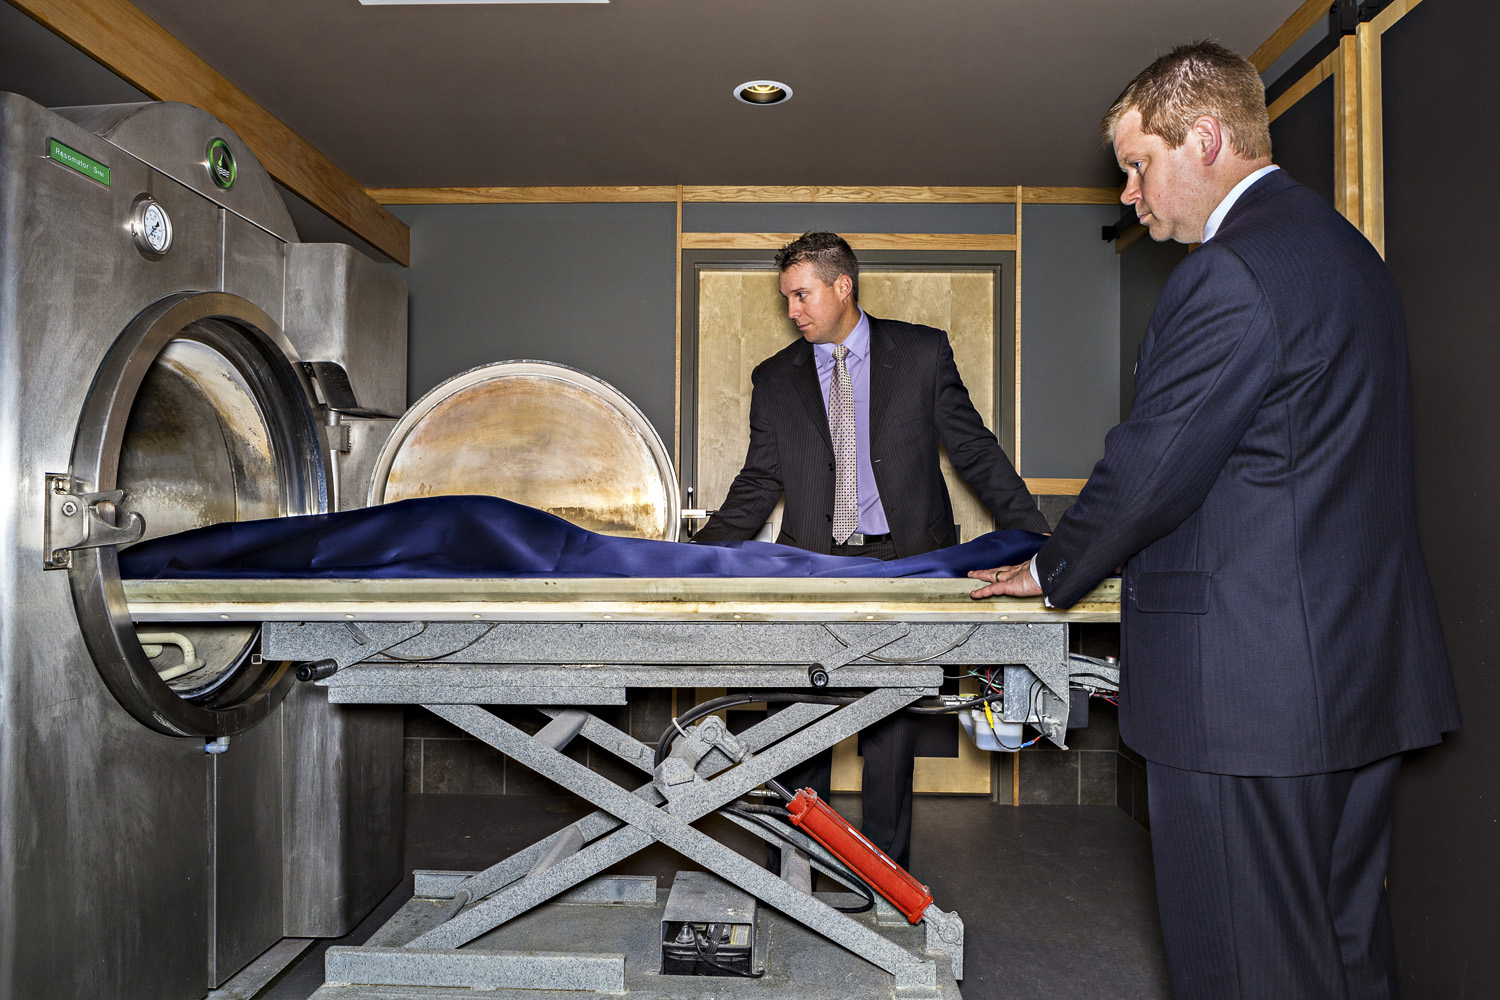 Jason Bradshaw and employee Cameron Black place a body in the Resomator.